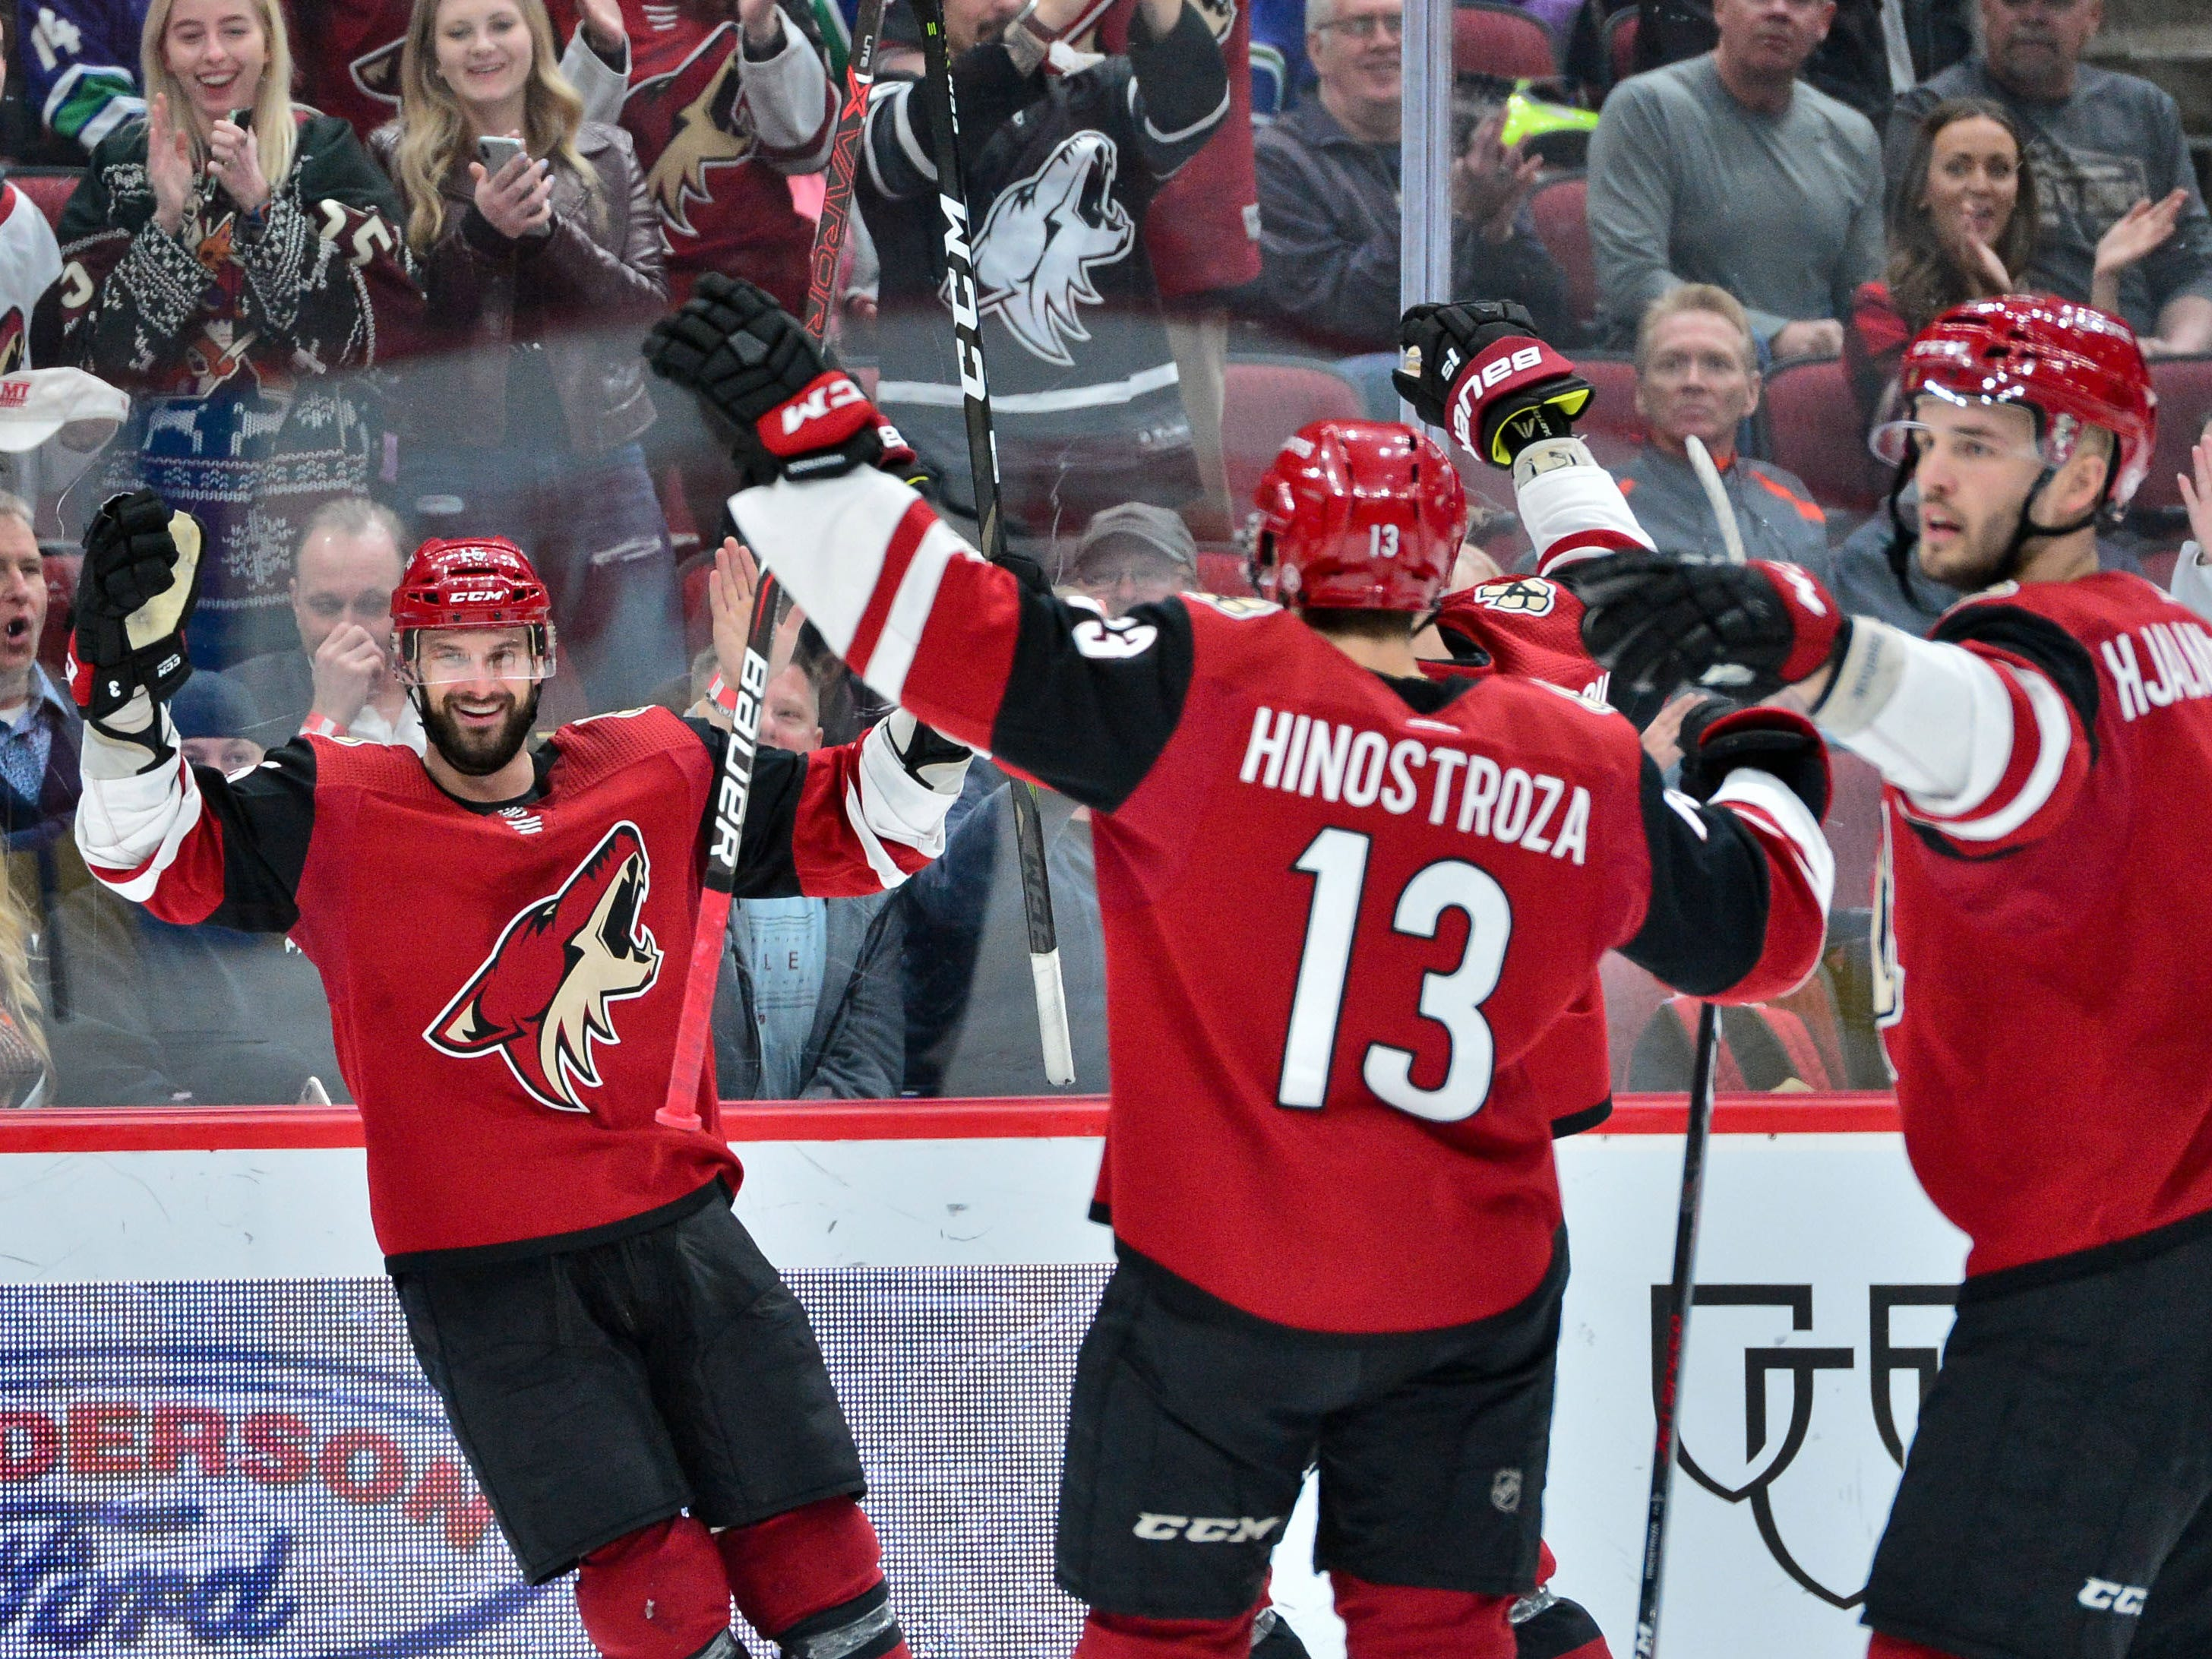 Feb 28, 2019; Glendale, AZ, USA; Arizona Coyotes center Brad Richardson (15) celebrates with center Vinnie Hinostroza (13) and defenseman Niklas Hjalmarsson (4) after scoring his third goal on the game during the second period against the Vancouver Canucks at Gila River Arena.